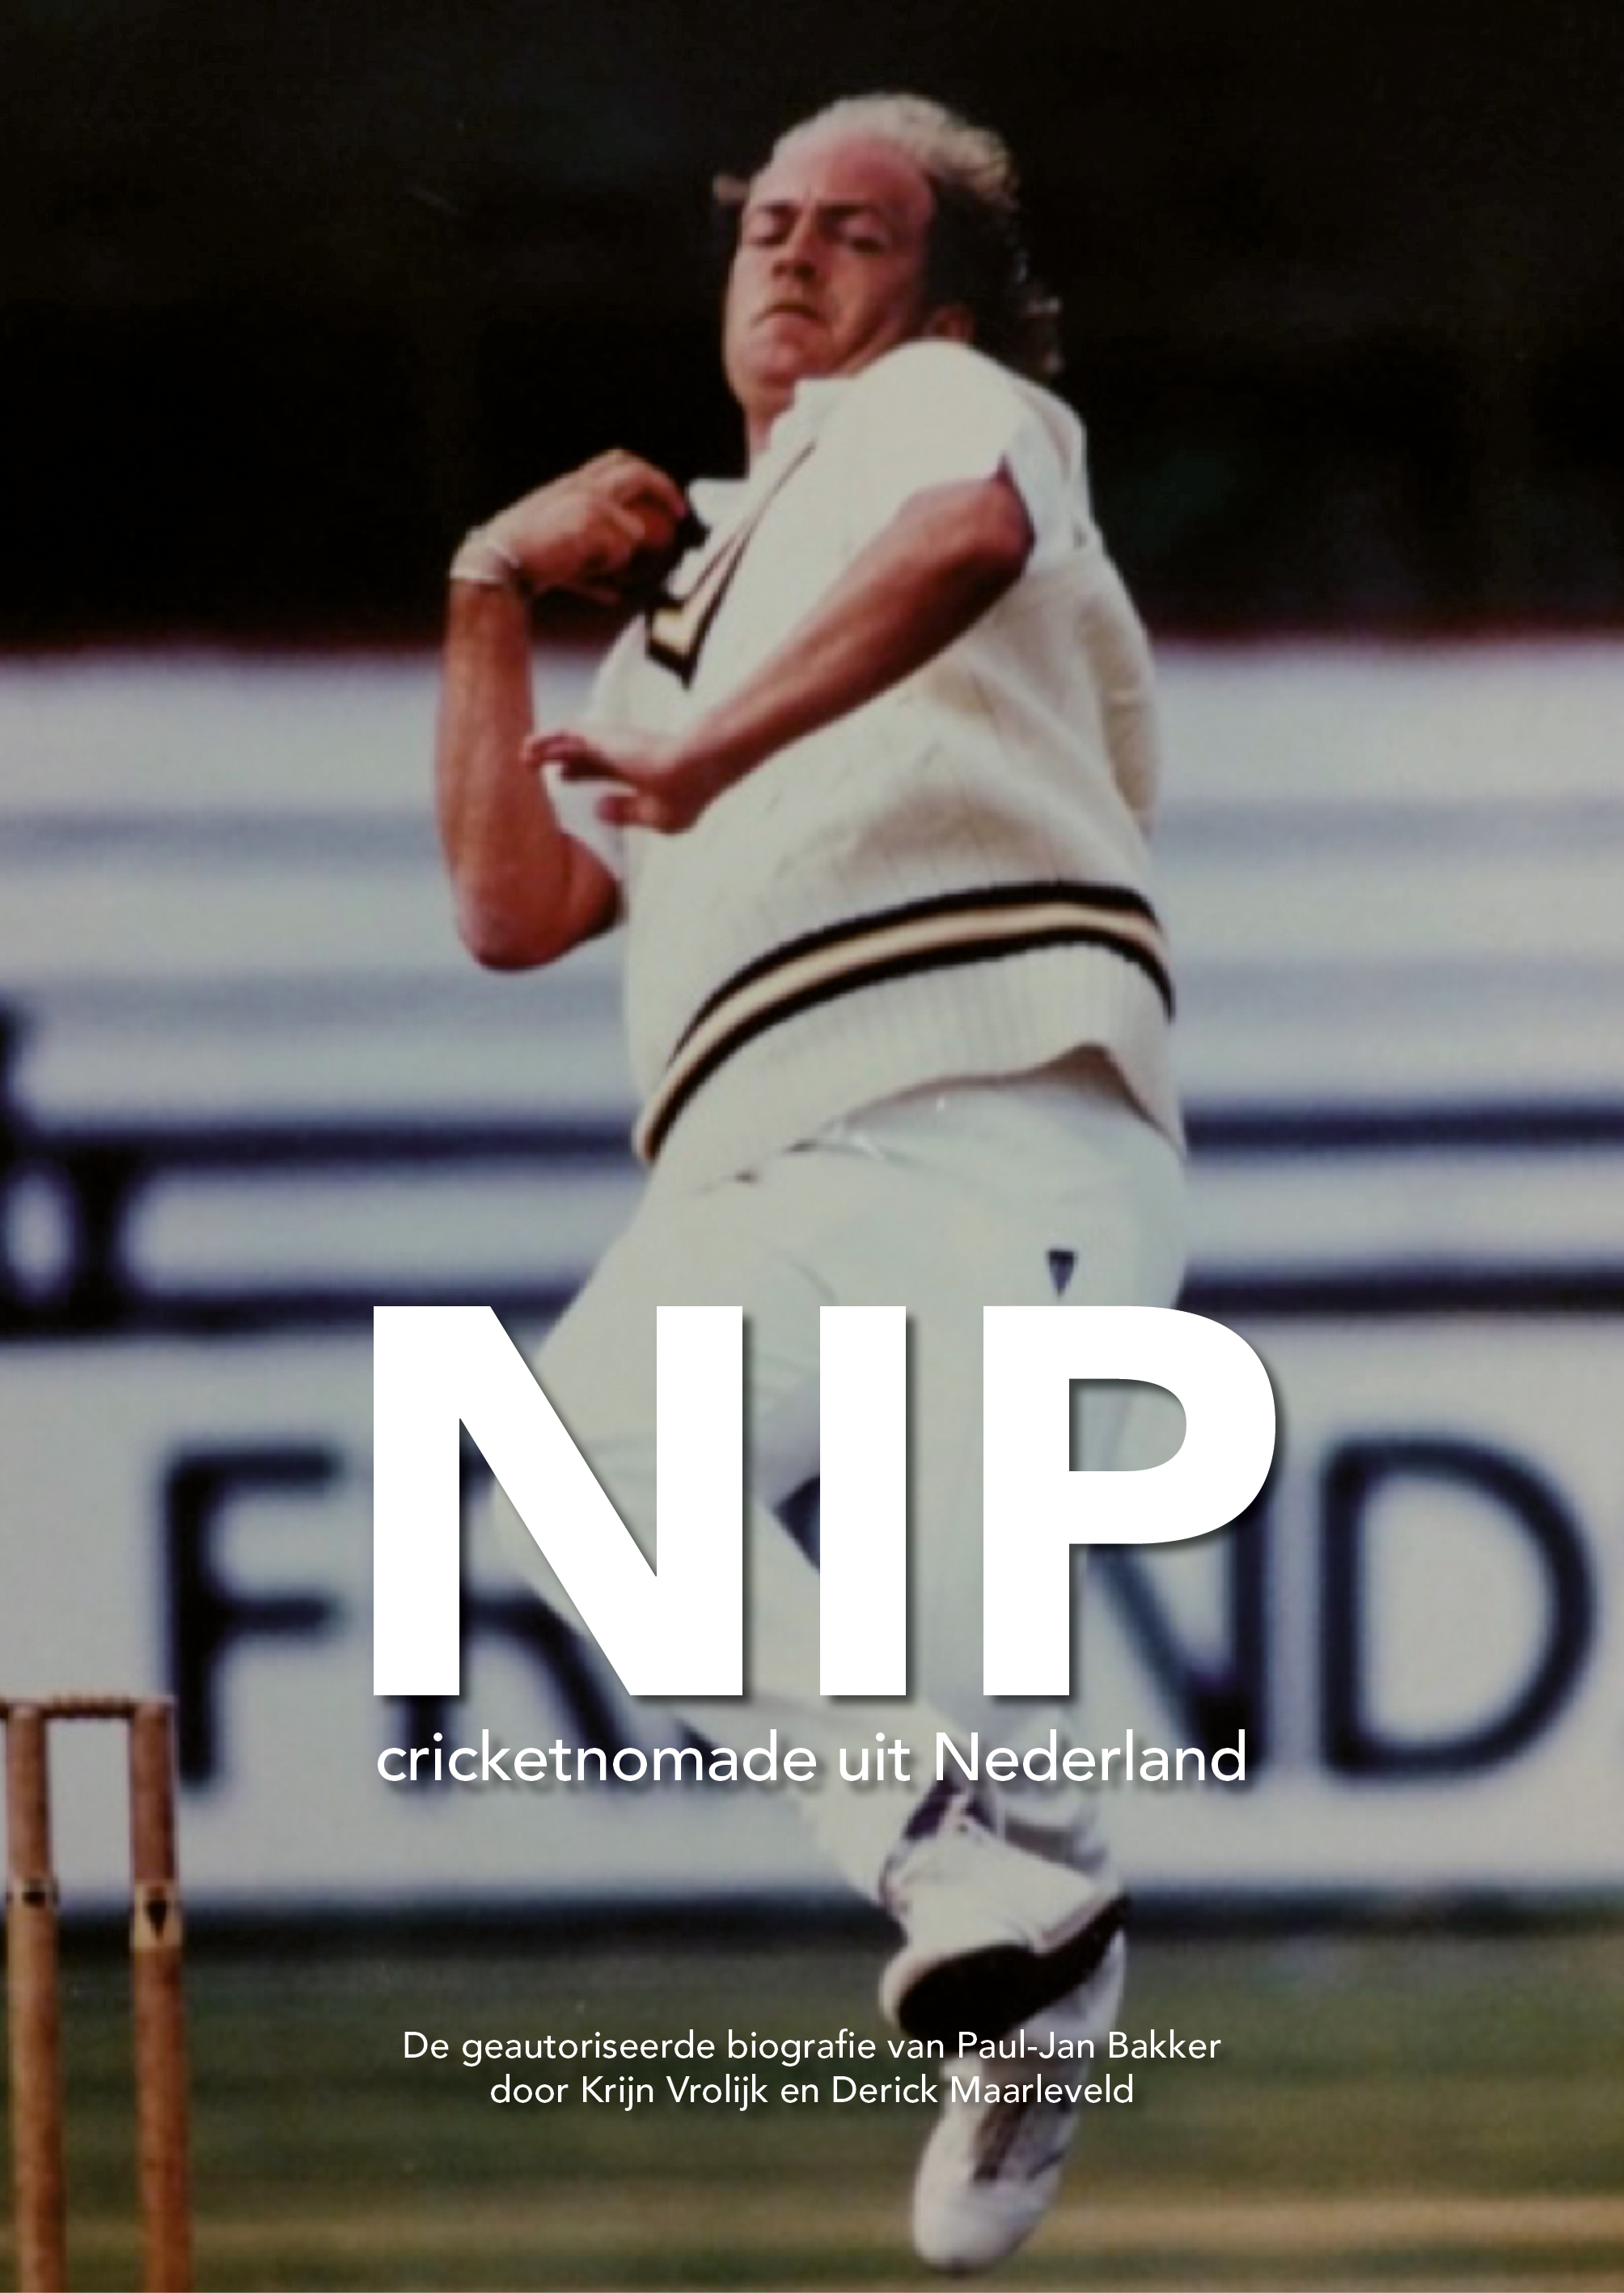 NIP cricketnomade uit Nederland - Paul-Jan Bakker